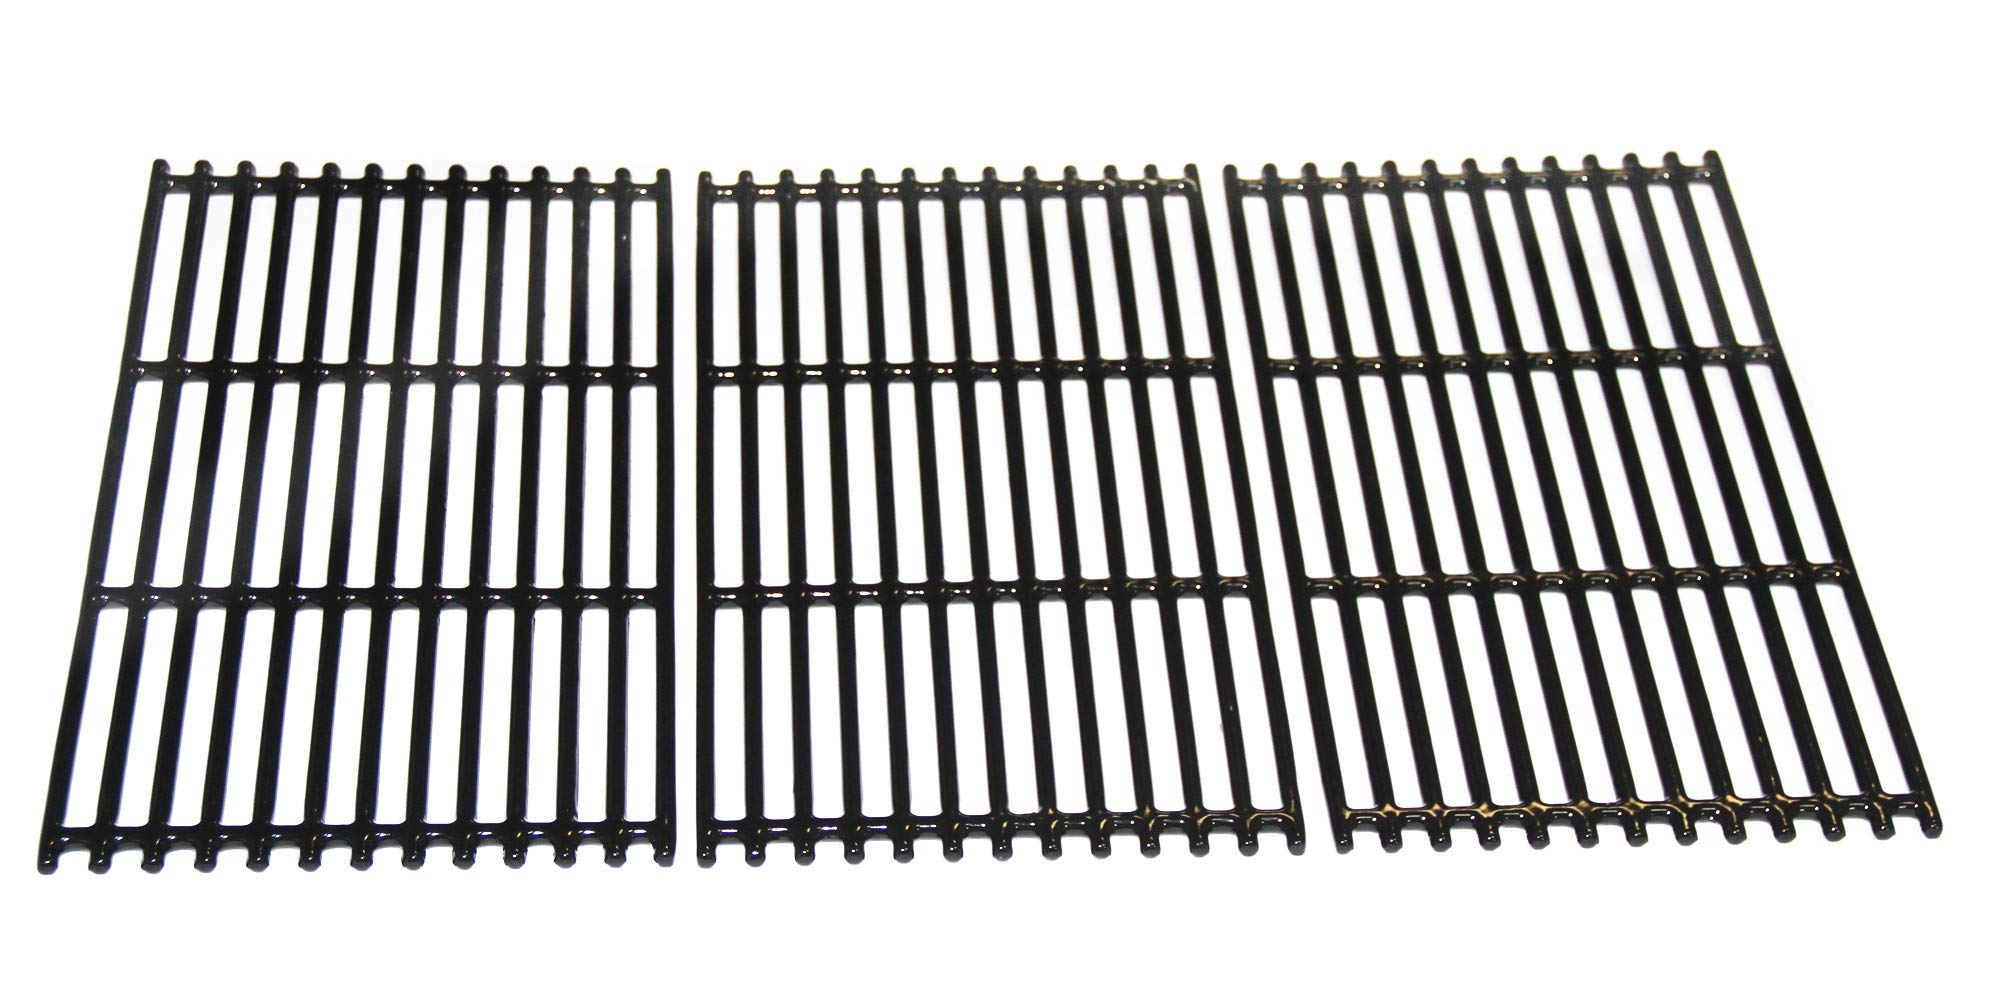 VICOOL hyG937C Glossy Porcelain Coated Cast Iron Cooking Grid Grates for Charbroil 463242715, 463242716, 463276016, 466242715, 466242815 Gas Grills, G533-0009-W1, Lowe's #606682, Walmart #555179228 by VICOOL